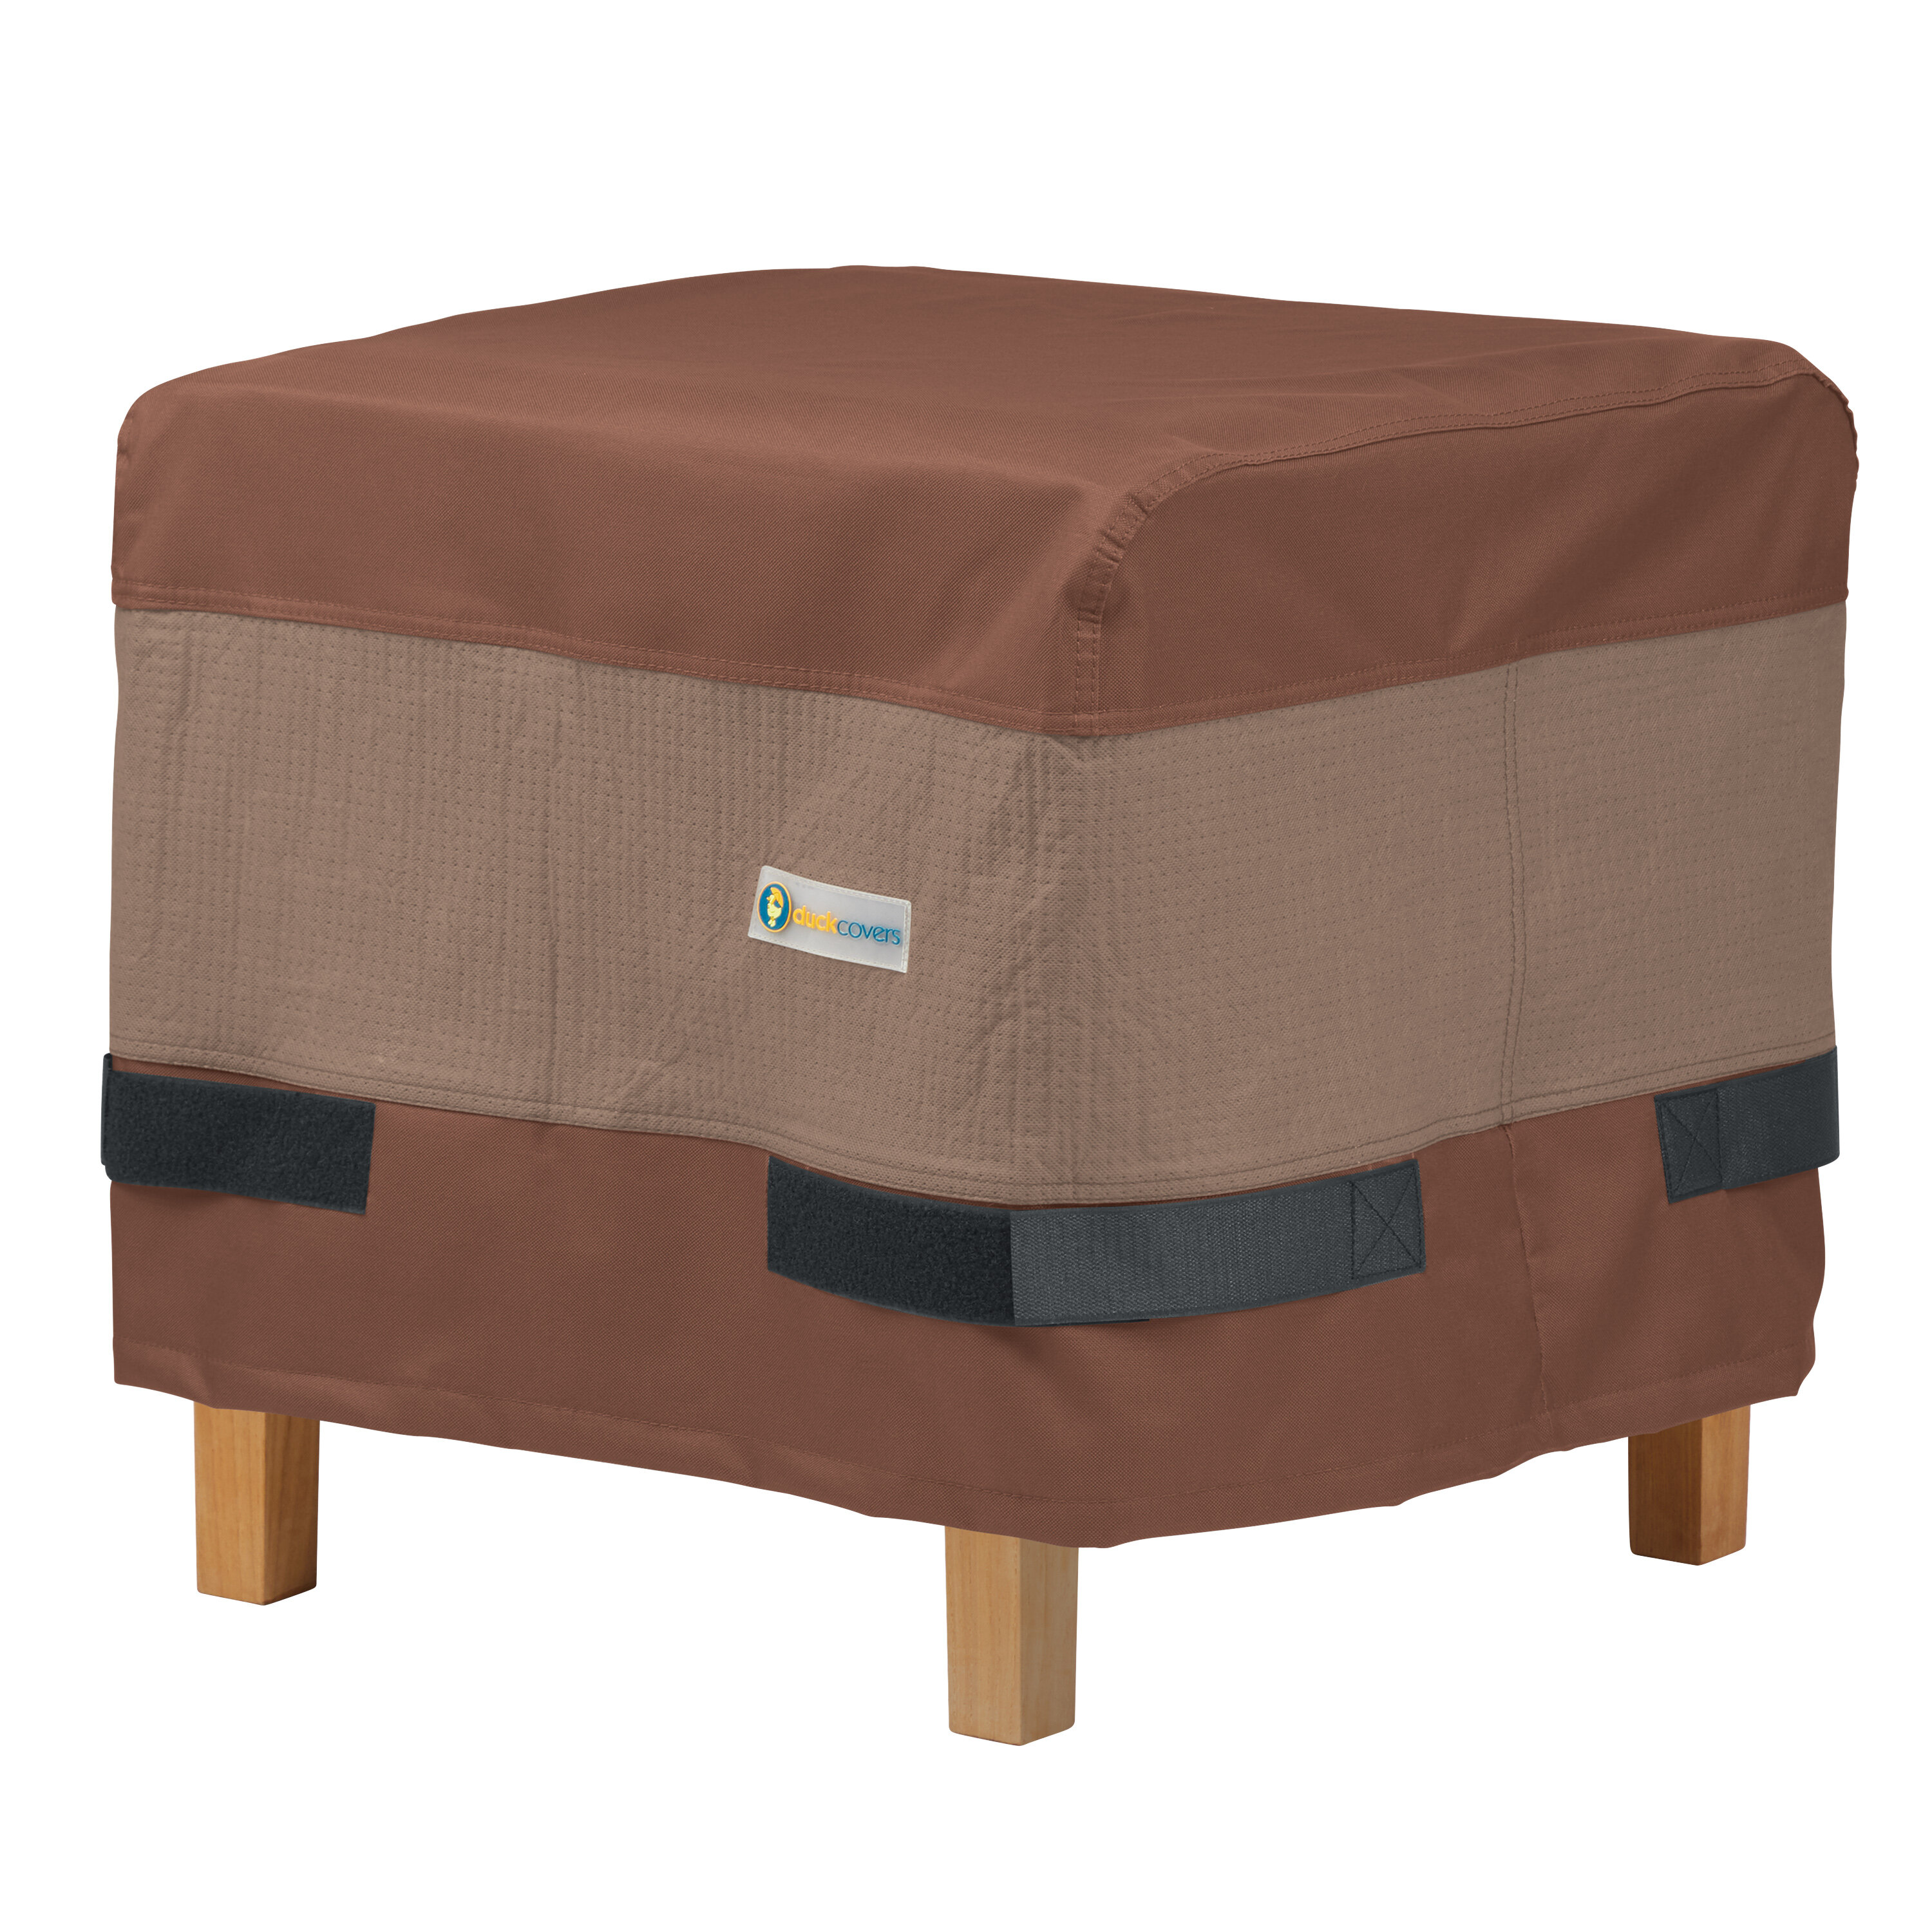 Freeport Park Square Ottoman Side Water Resistant Patio Table Cover Wayfair